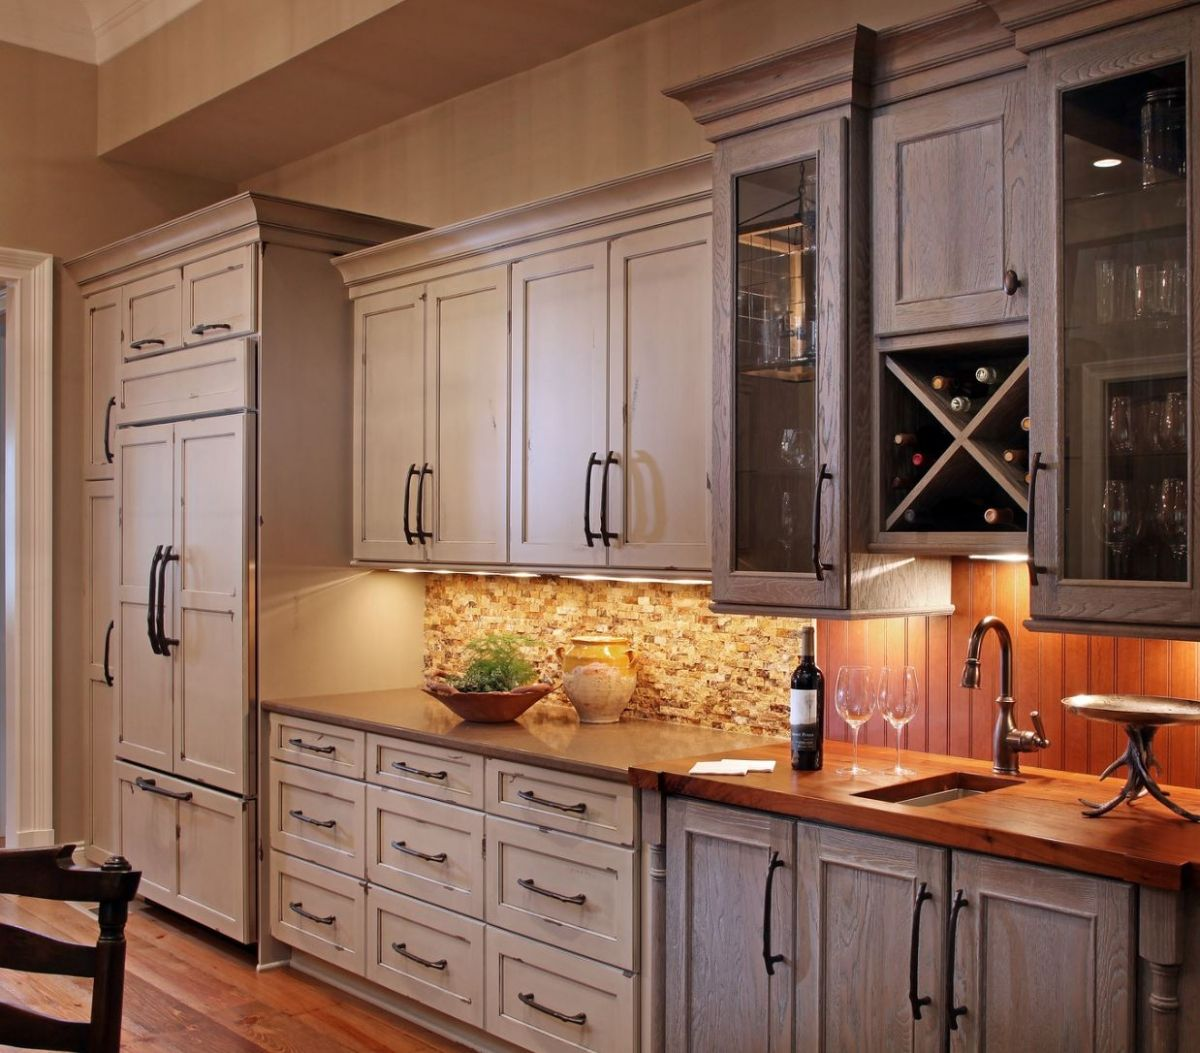 Warm and welcoming kitchen kitchen ideas rustic - Kitchen and bath by design lagrange ga ...